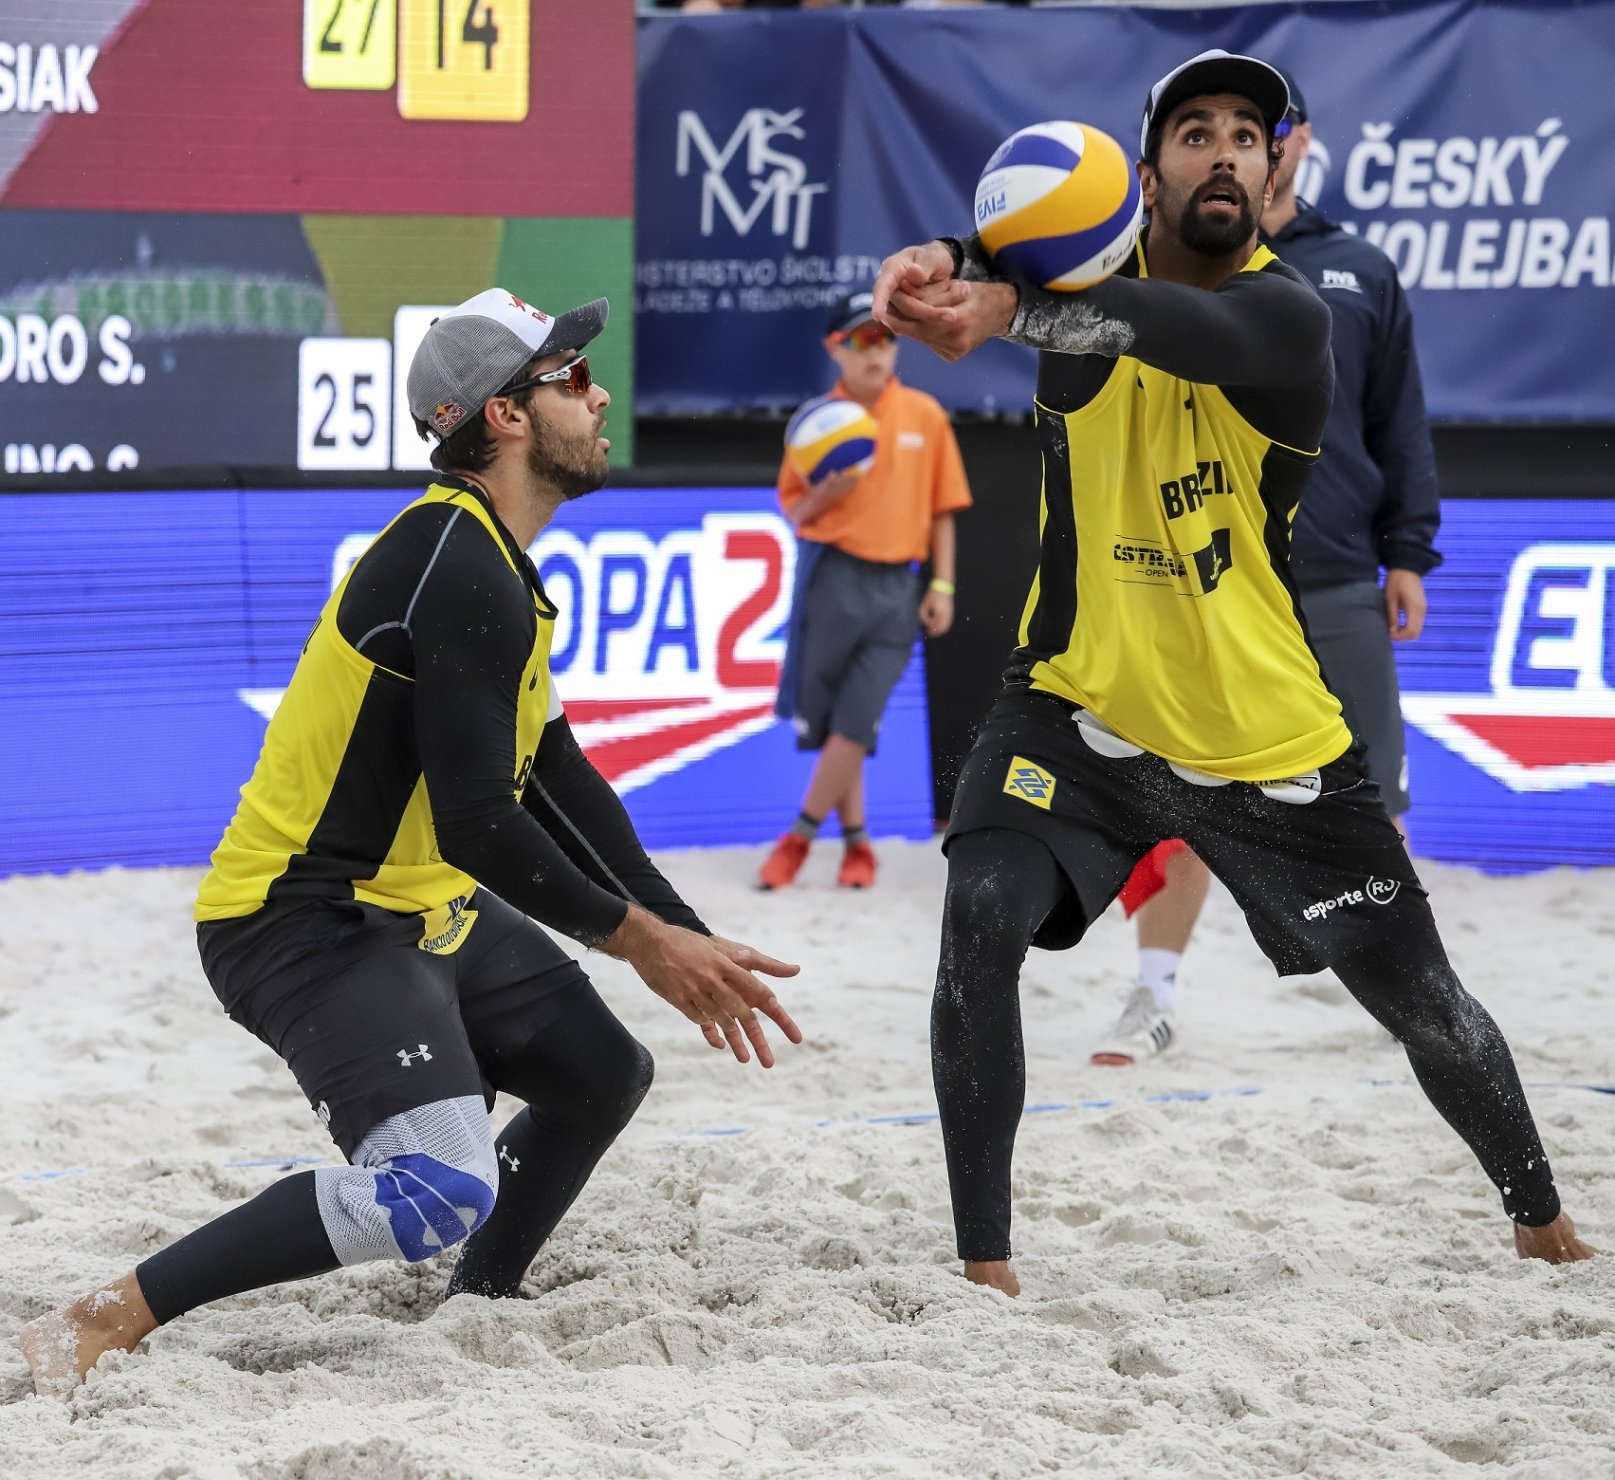 The run of Pedro and Bruno in Ostrava was ended by Brouwer and Meeuwsen in the Round of 16 (Photocredit: FIVB)